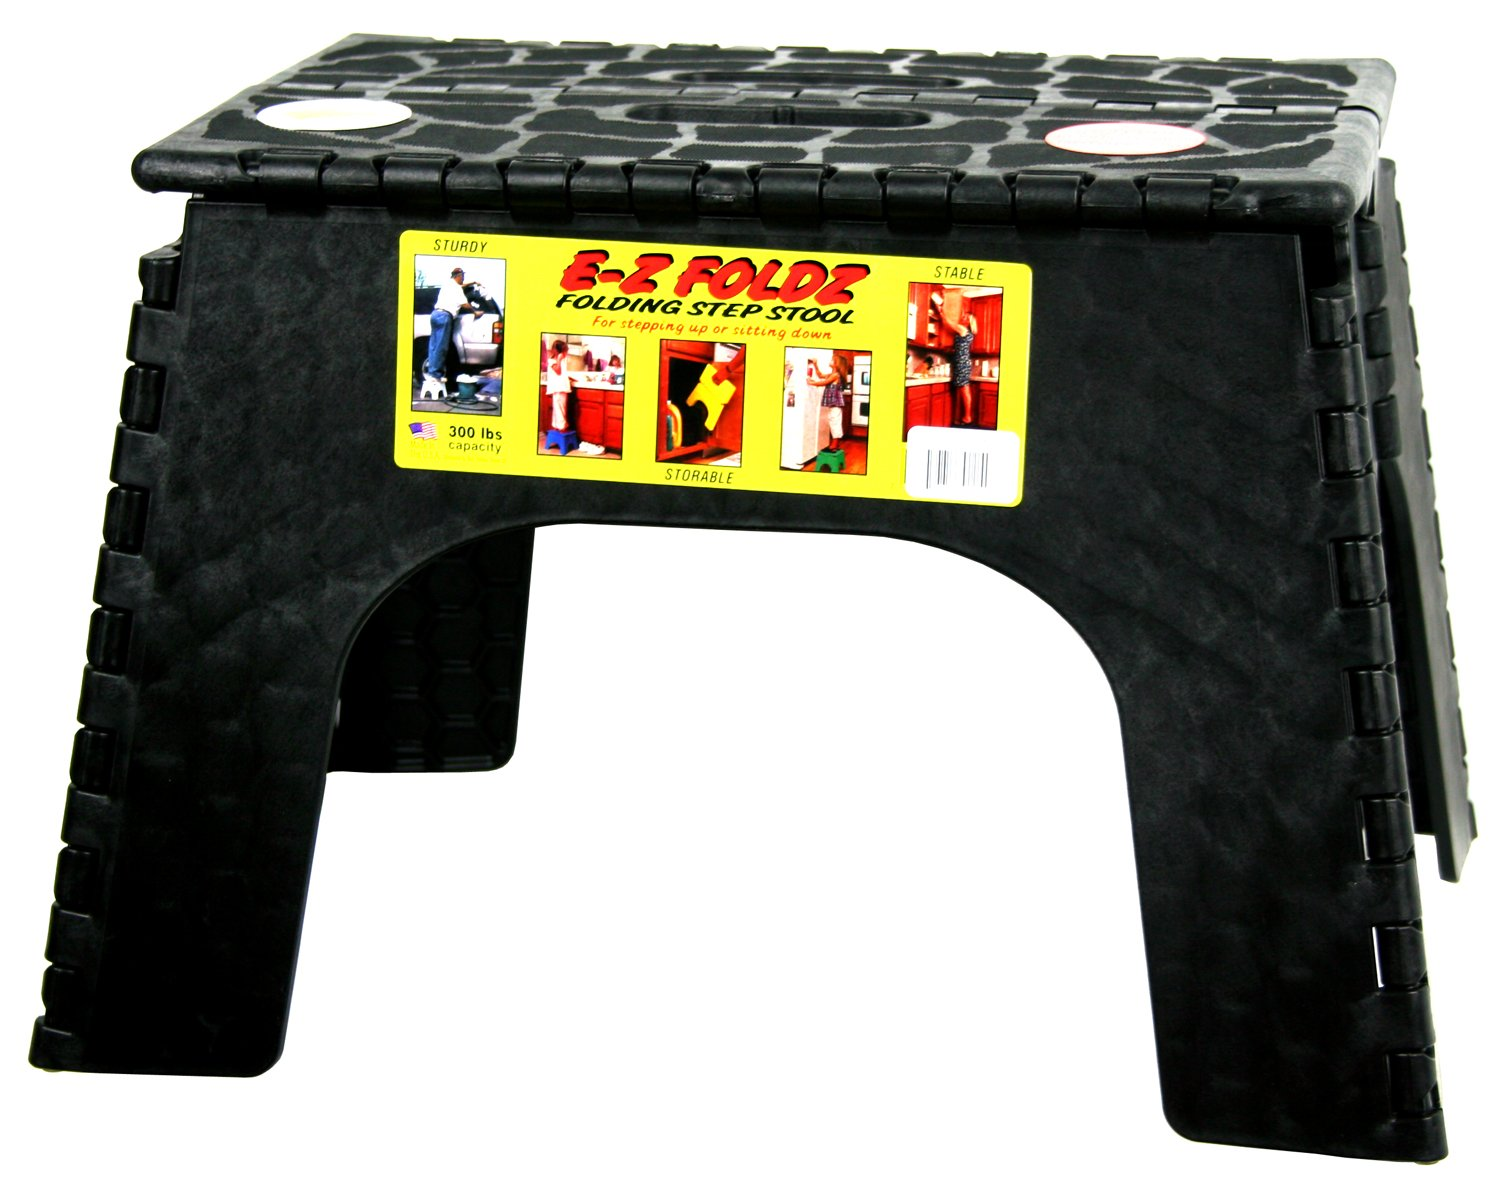 Amazon.com B u0026 R Plastics 103-6BK E-Z Foldz Black 12  Step Stool Automotive  sc 1 st  Amazon.com & Amazon.com: B u0026 R Plastics 103-6BK E-Z Foldz Black 12